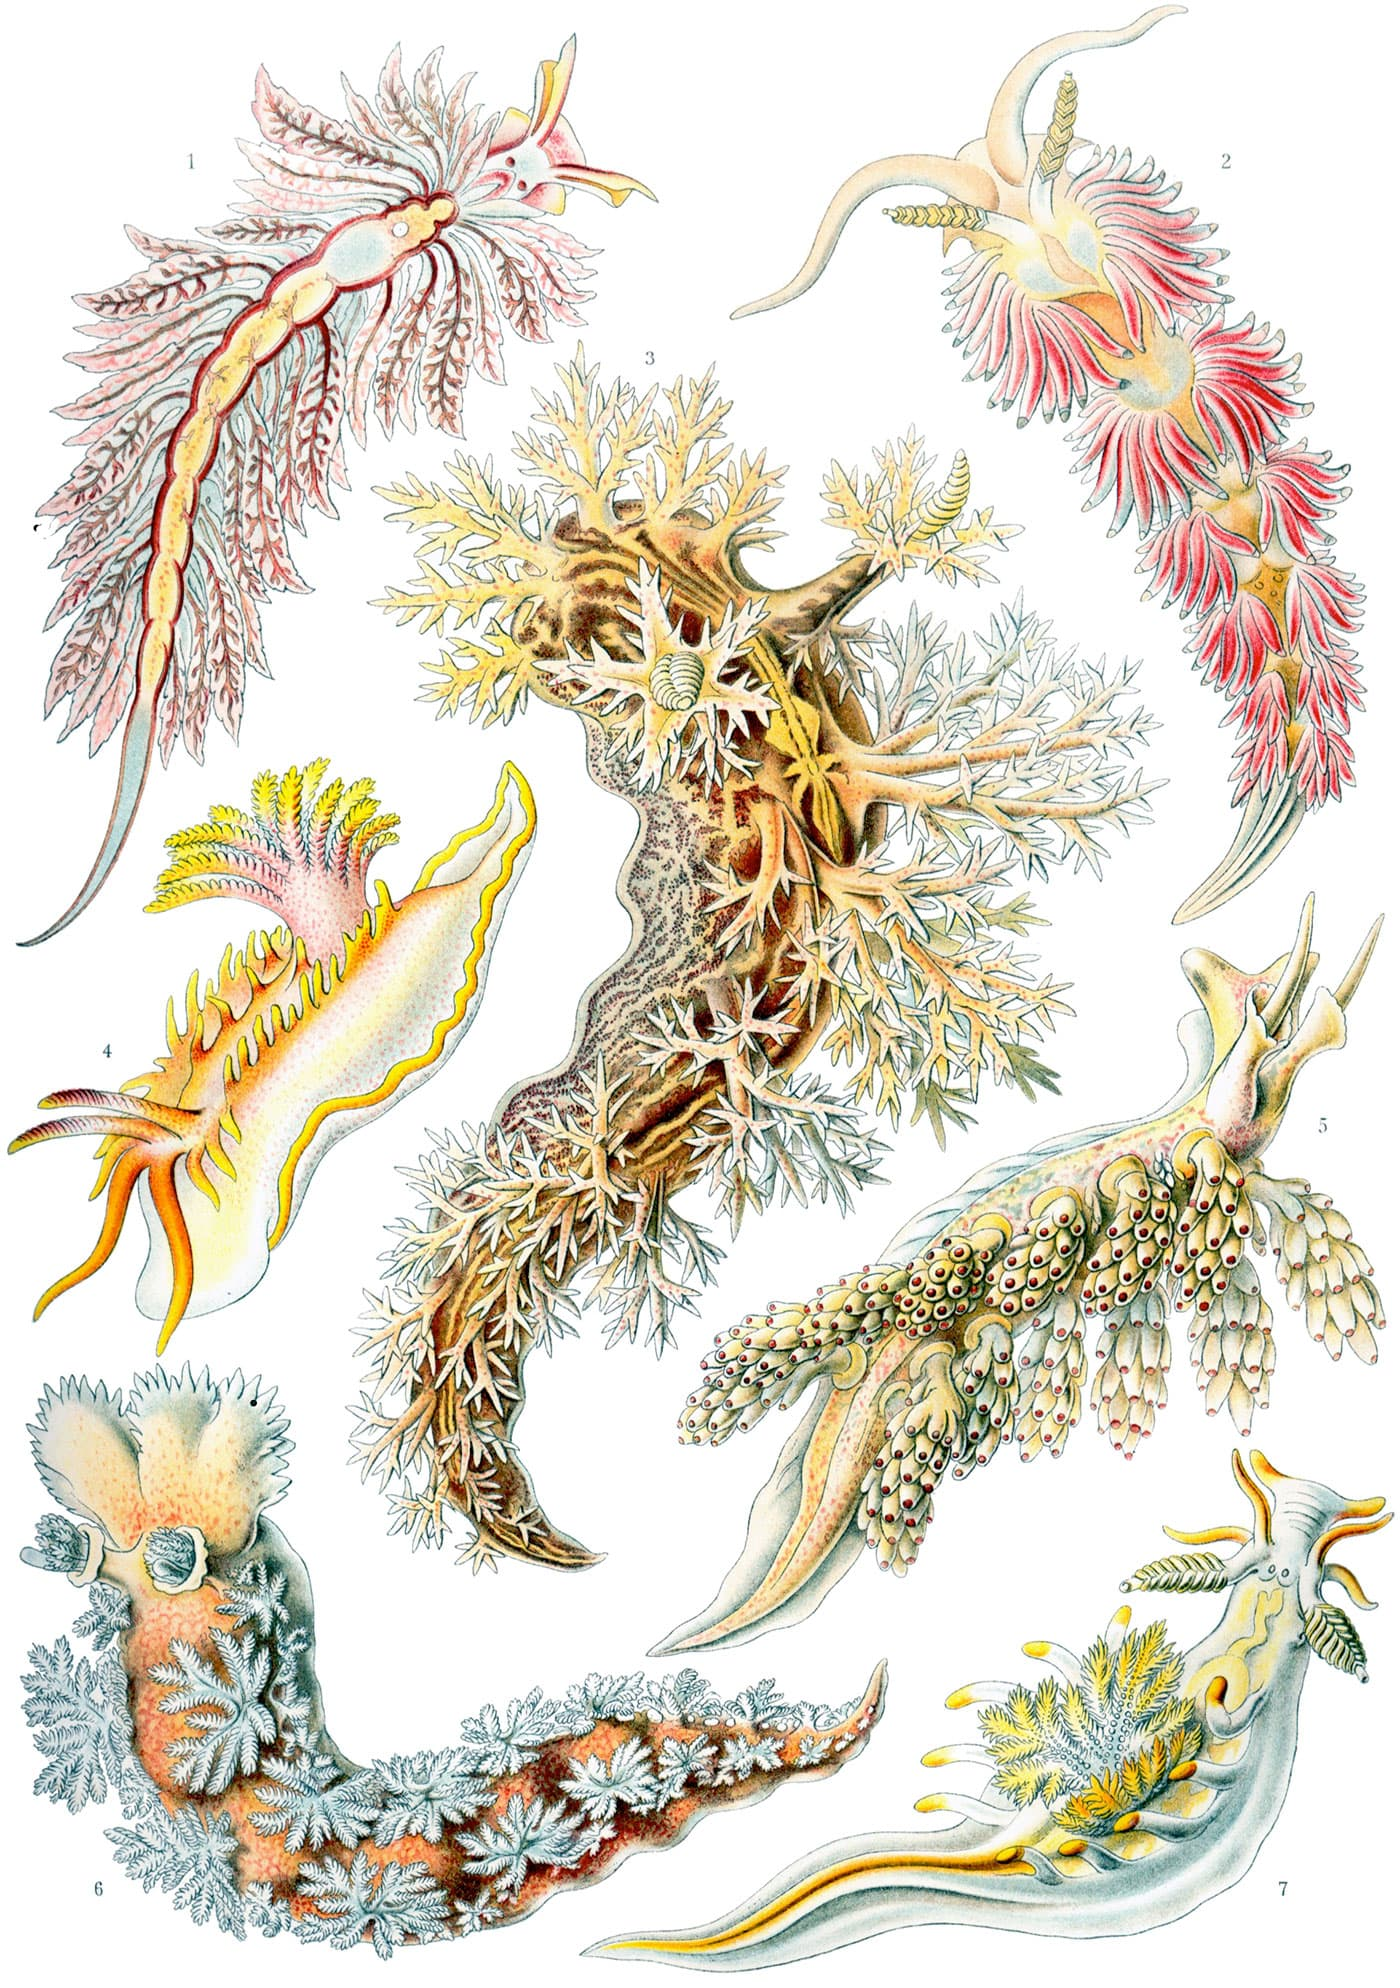 ernst-haeckel, scientific illustration